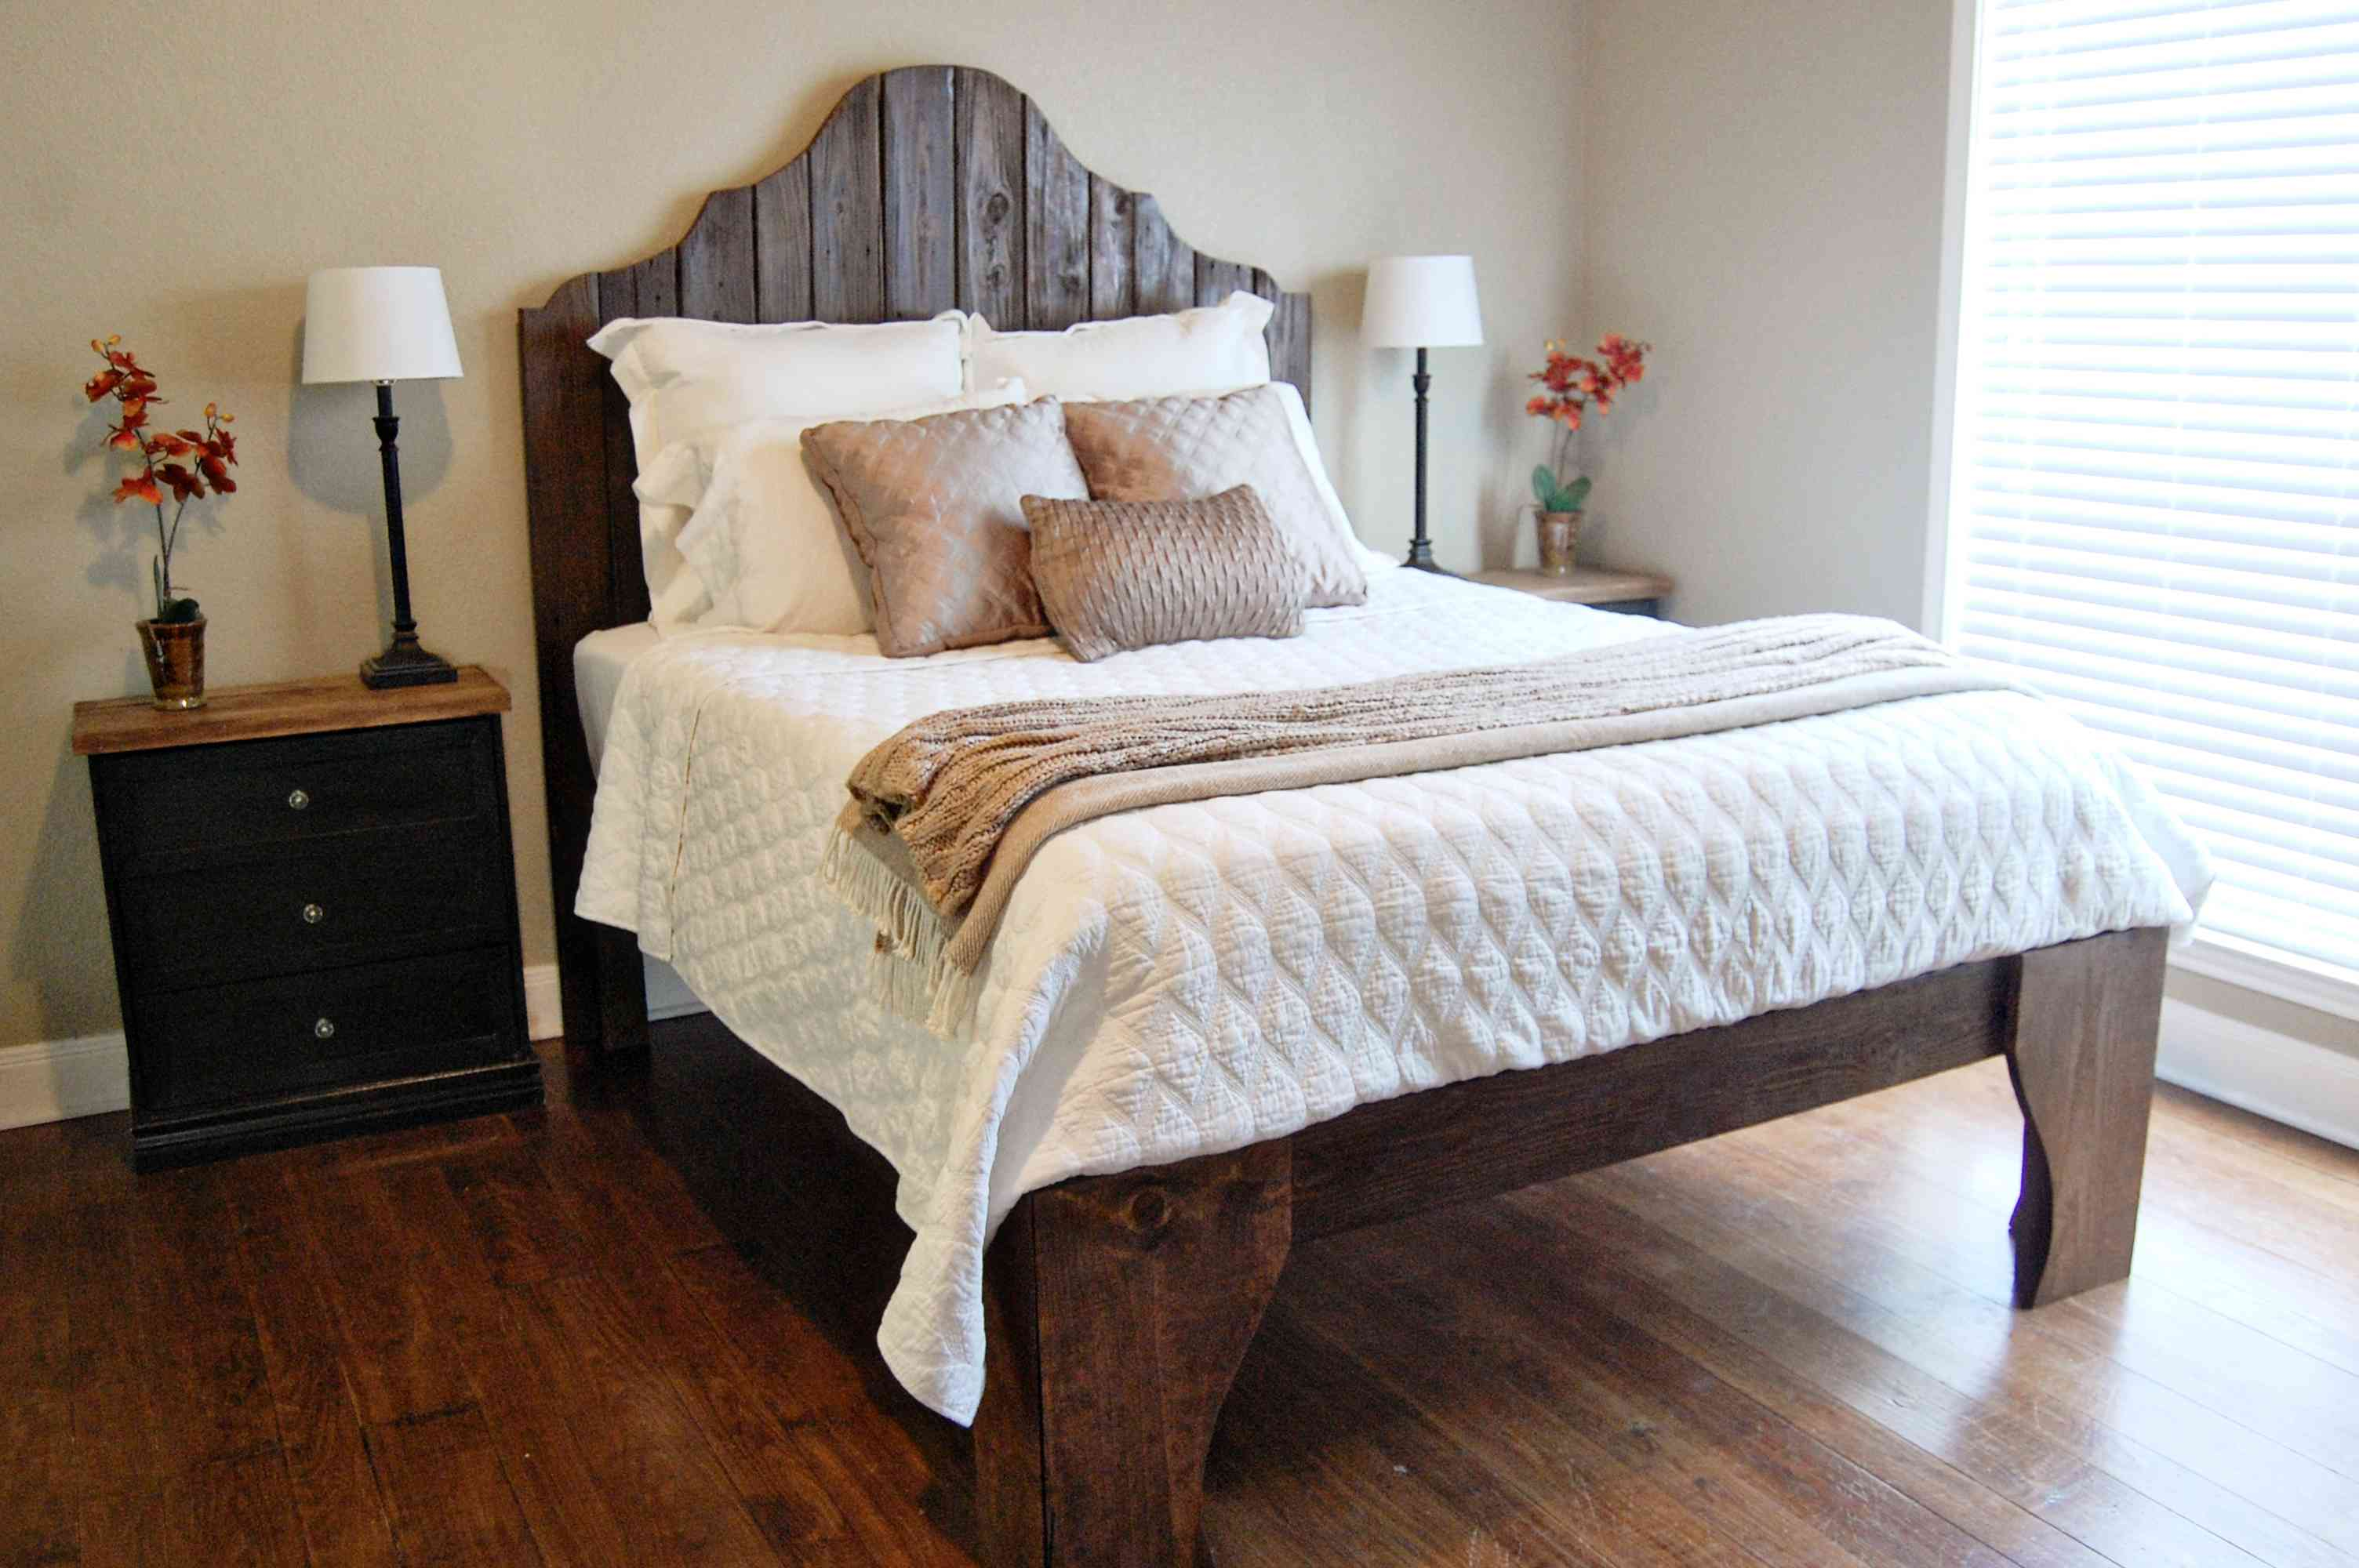 A wooden bed in a bedroom